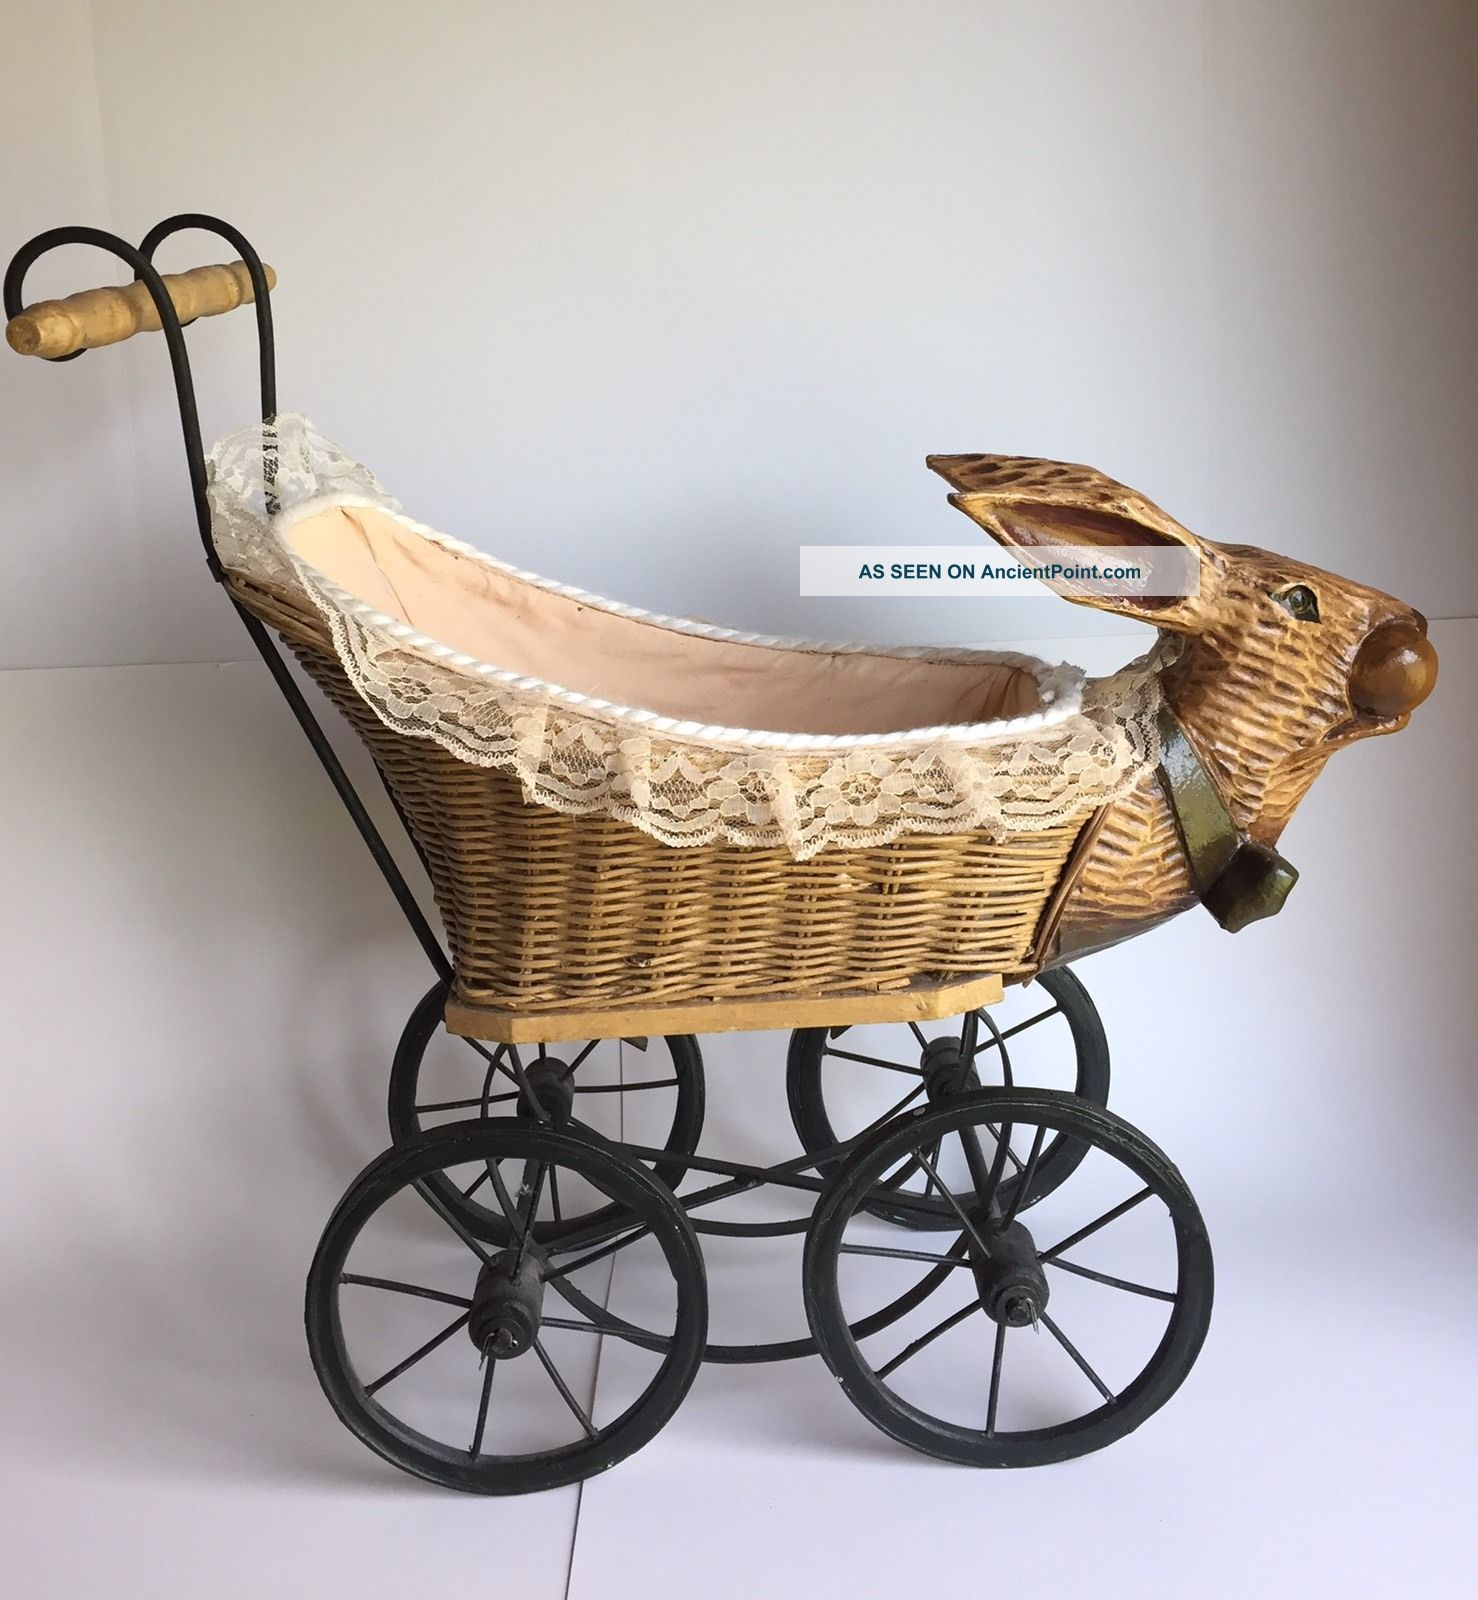 Vintage Wicker Baby Buggy Rabbit Bunny Pram Baby Carriages & Buggies photo